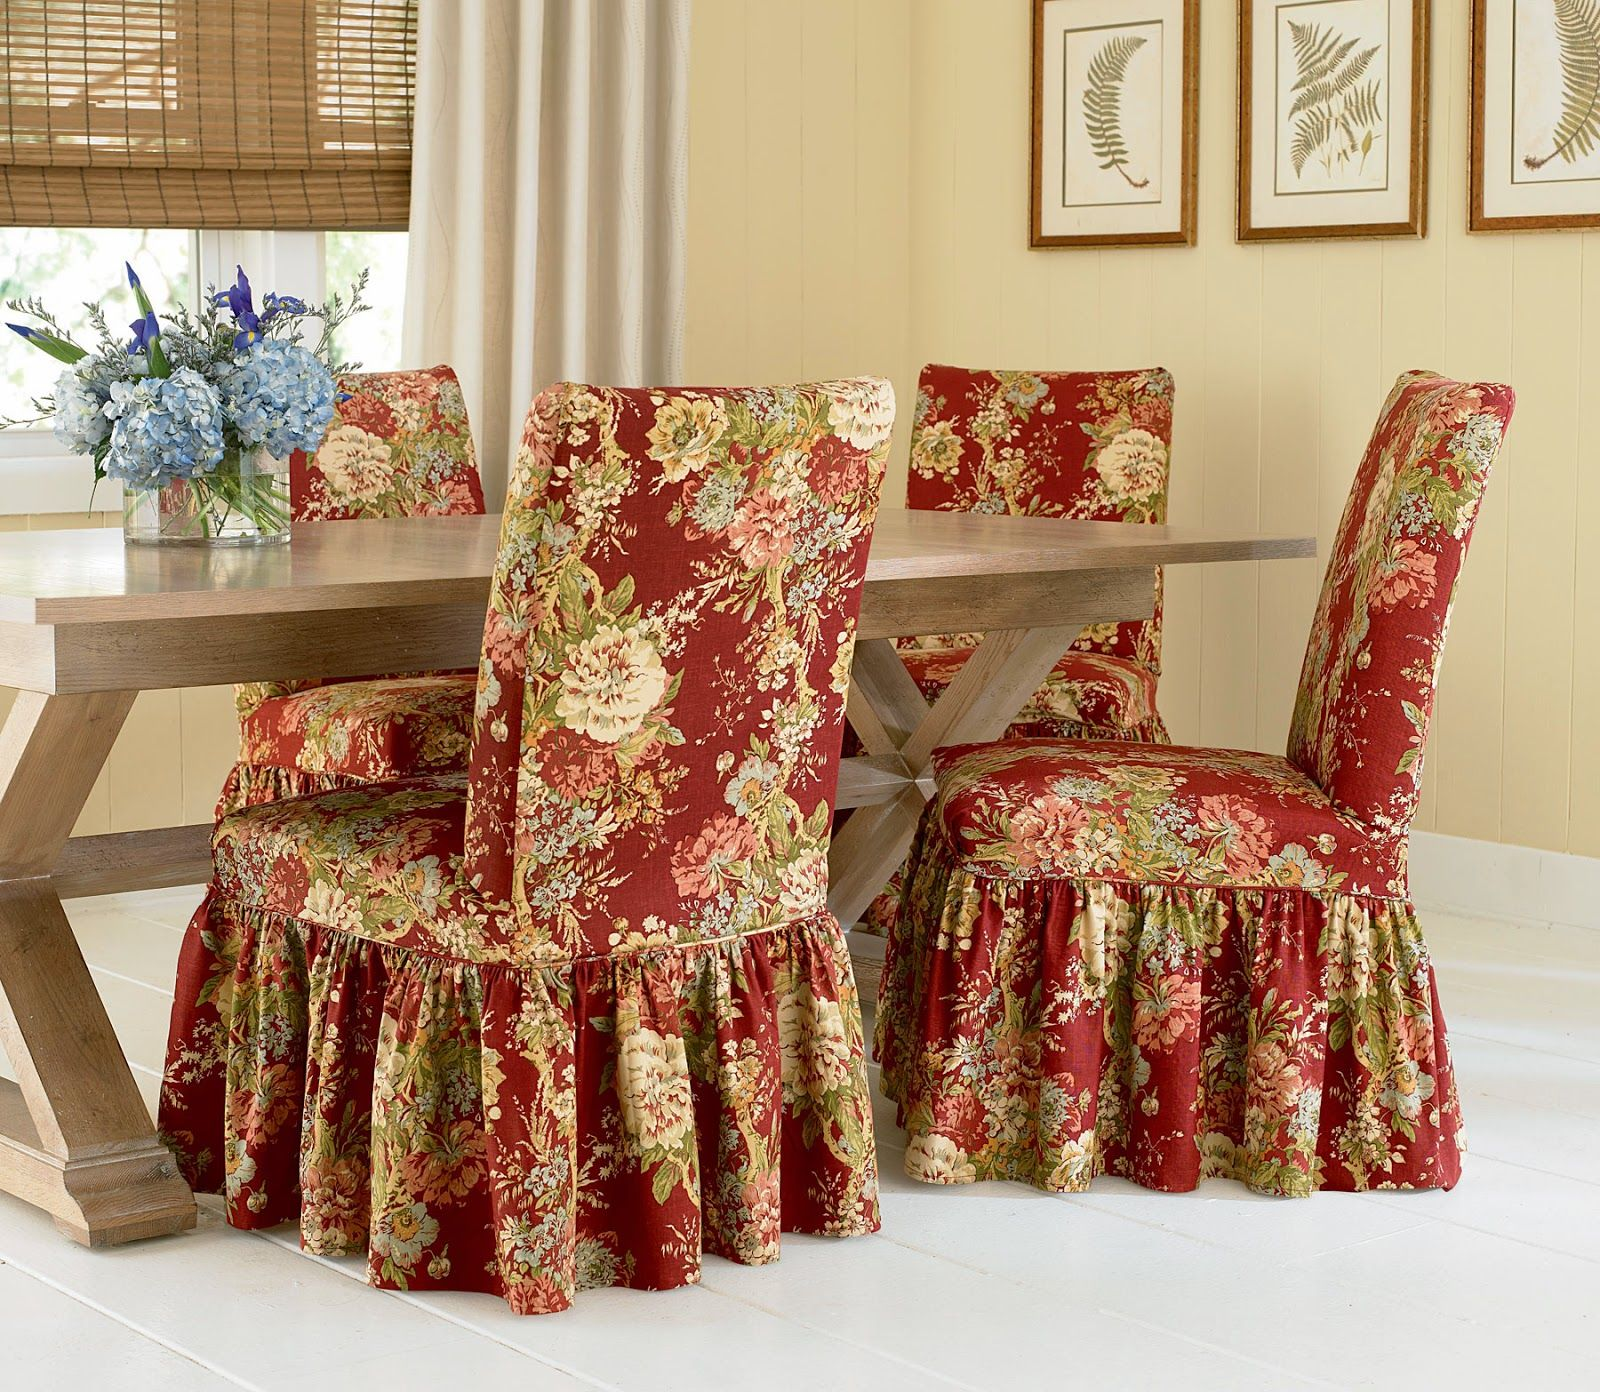 Dining Room Dining Room Chair Slipcovers With Flower